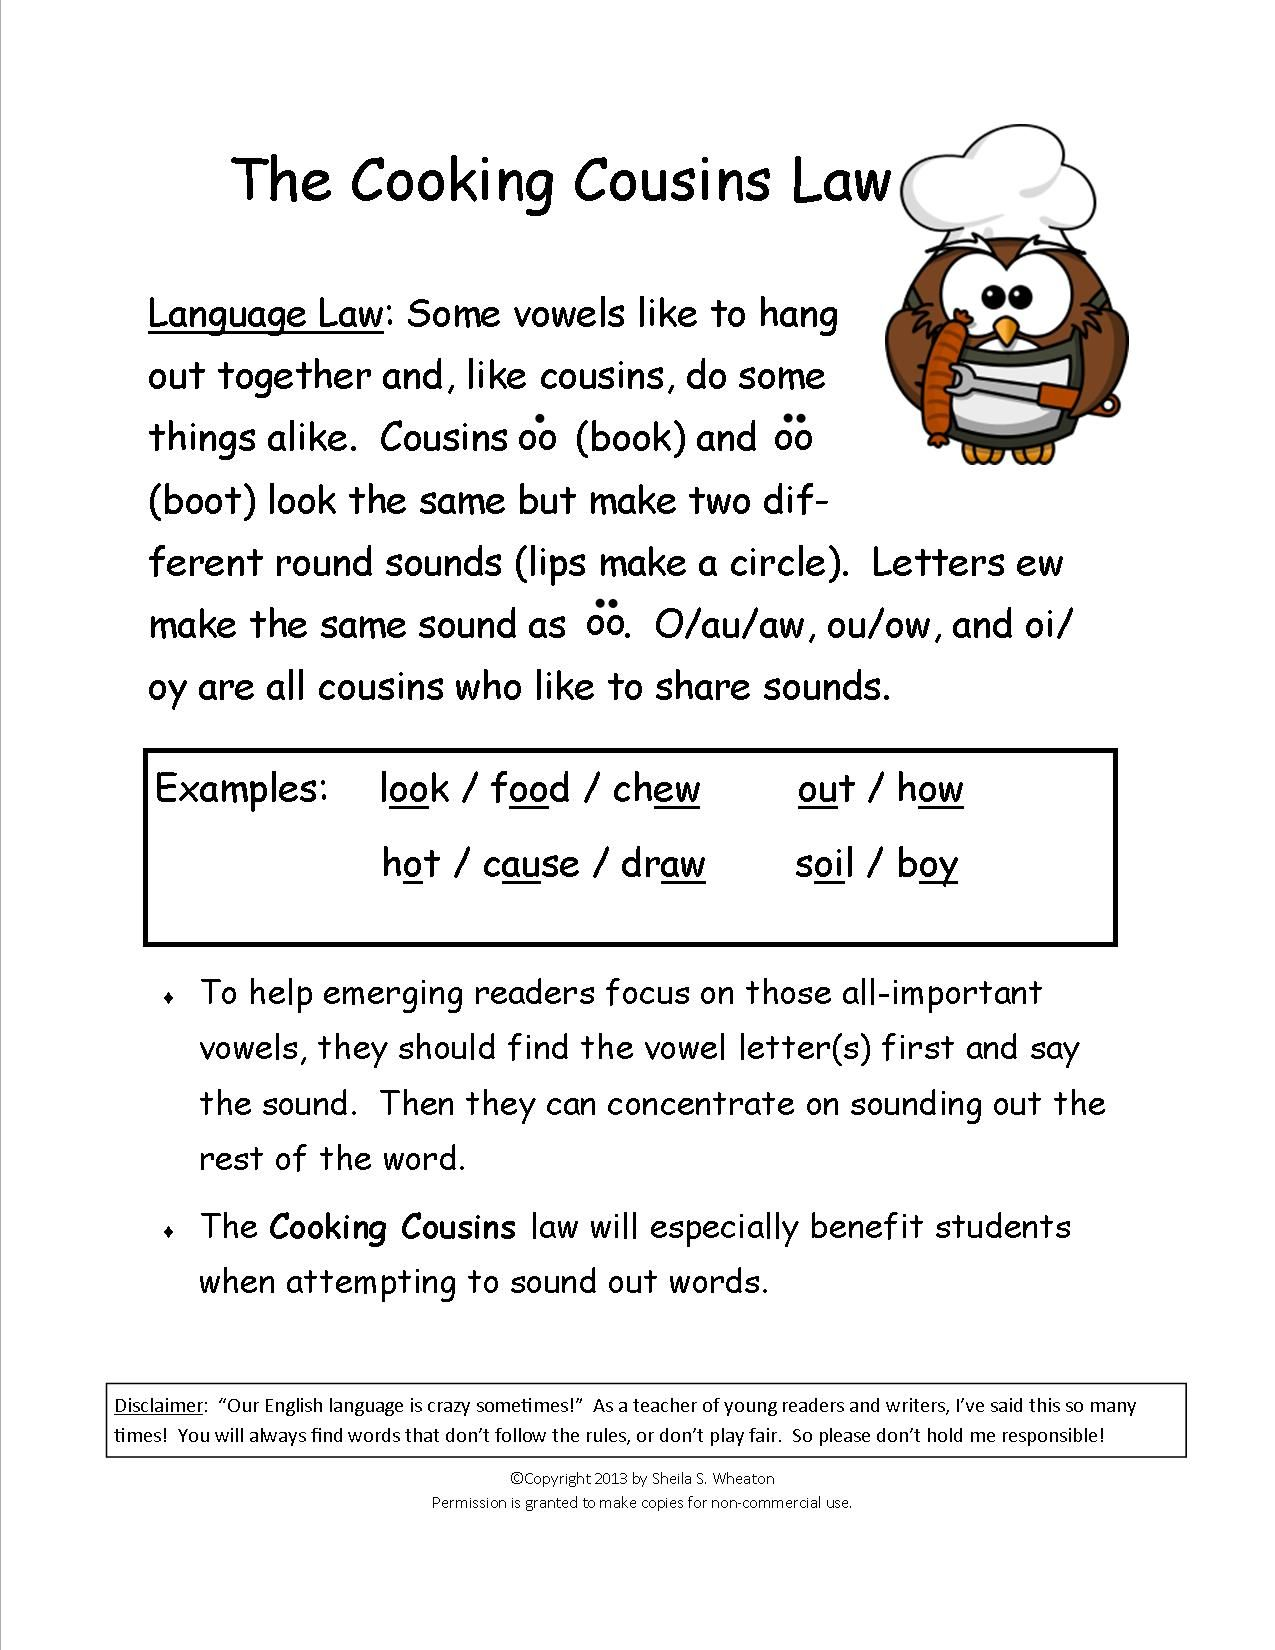 Worksheets Words With Oo Sound Like Book cooking cousins teaches the sounds made by oo book food ew food